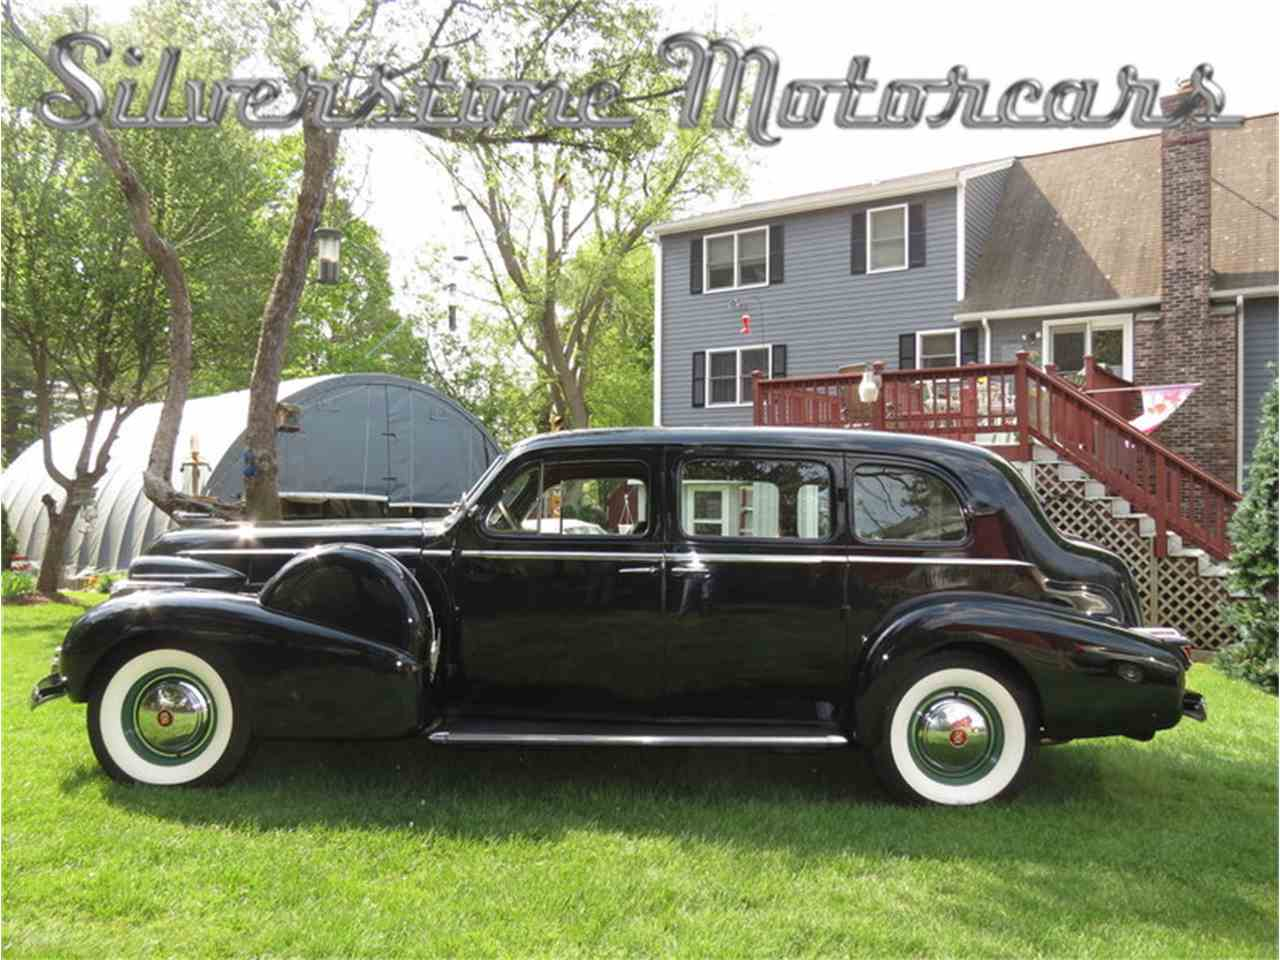 Large Picture of 1939 Cadillac Fleetwood Offered by Silverstone Motorcars - F8HI